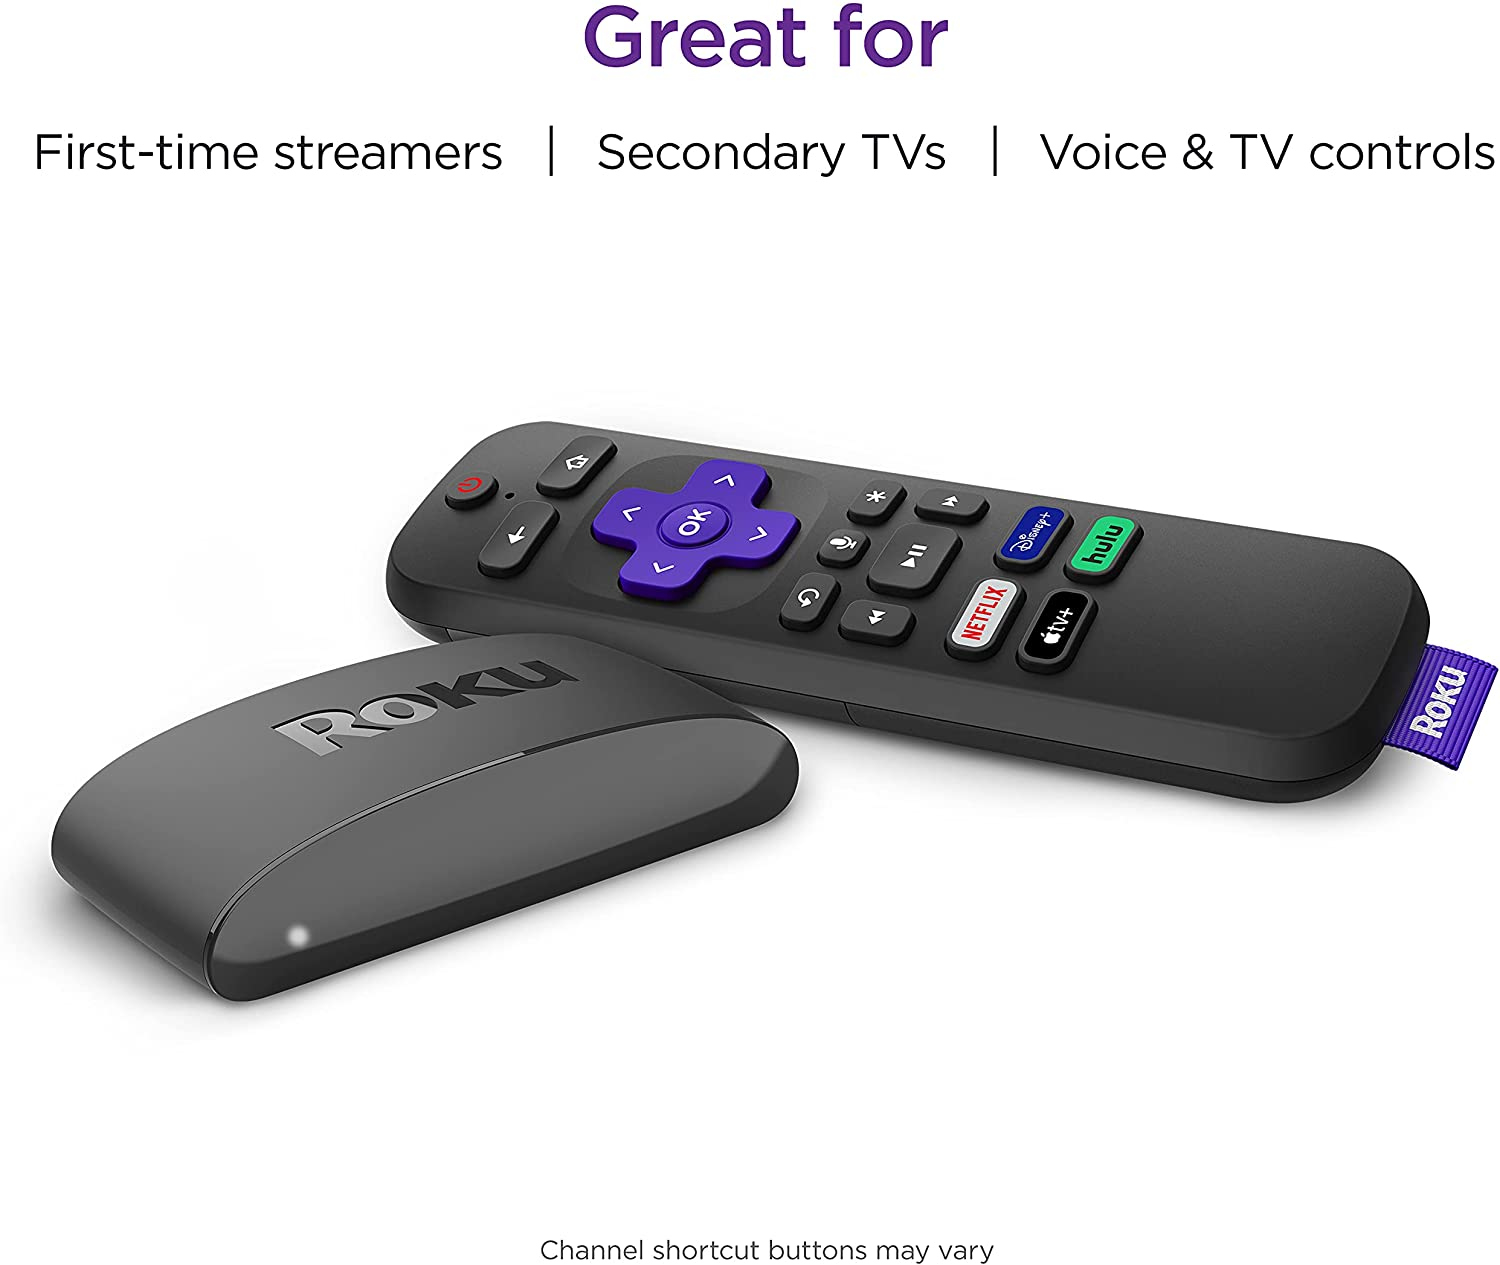 Roku Express 4K+ 2021 | Streaming Media Player HD/4K/HDR with Smooth Wireless Streaming and Roku Voice Remote with TV Controls, Includes Premium HDMI Cable